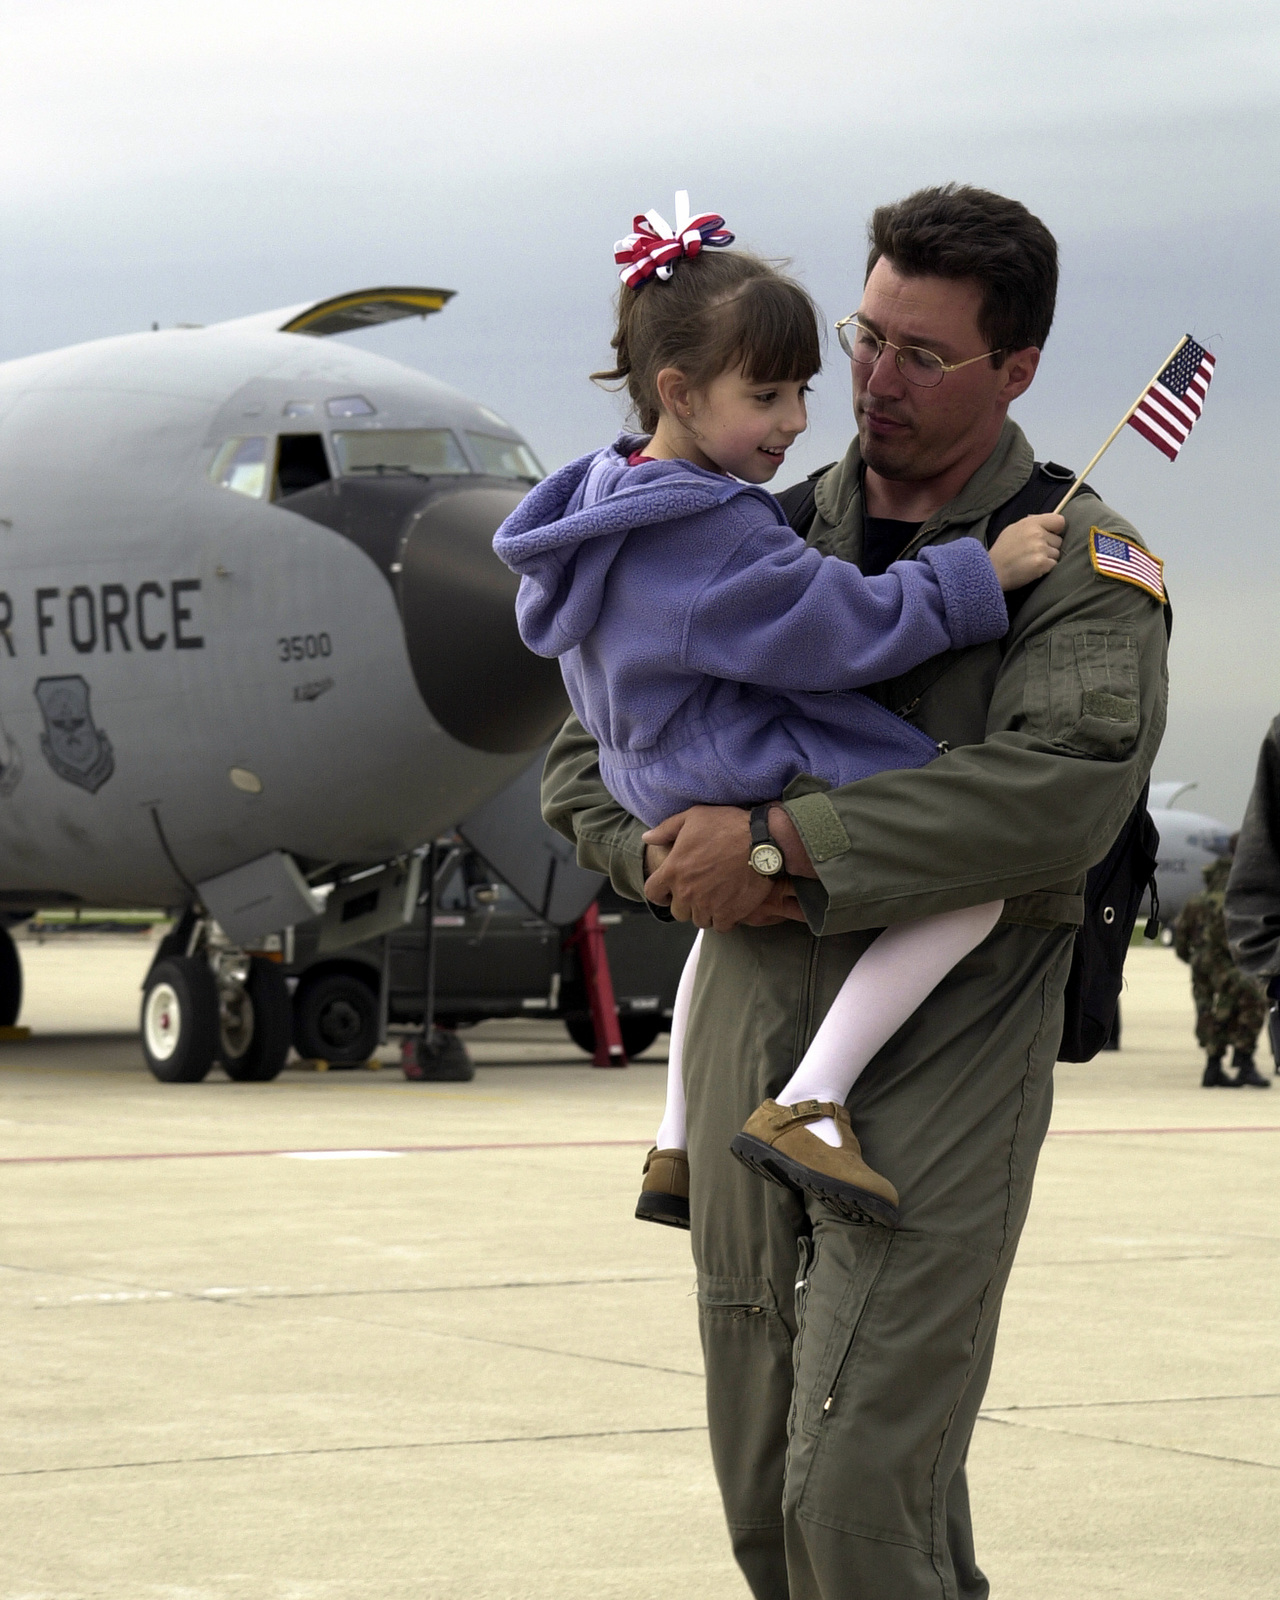 US Air Force (USAF) Technical Sergeant (TSGT) Kelly Lawrence, 128th Air Refueling Wing (ARW) Wisconsin Air National Guard (ANG) is welcomed home by his daughter on the flight line at General Mitchell International Airport (IAP), Wisconsin (WI), after a deployment in support of Operation ENDURING FREEDOM